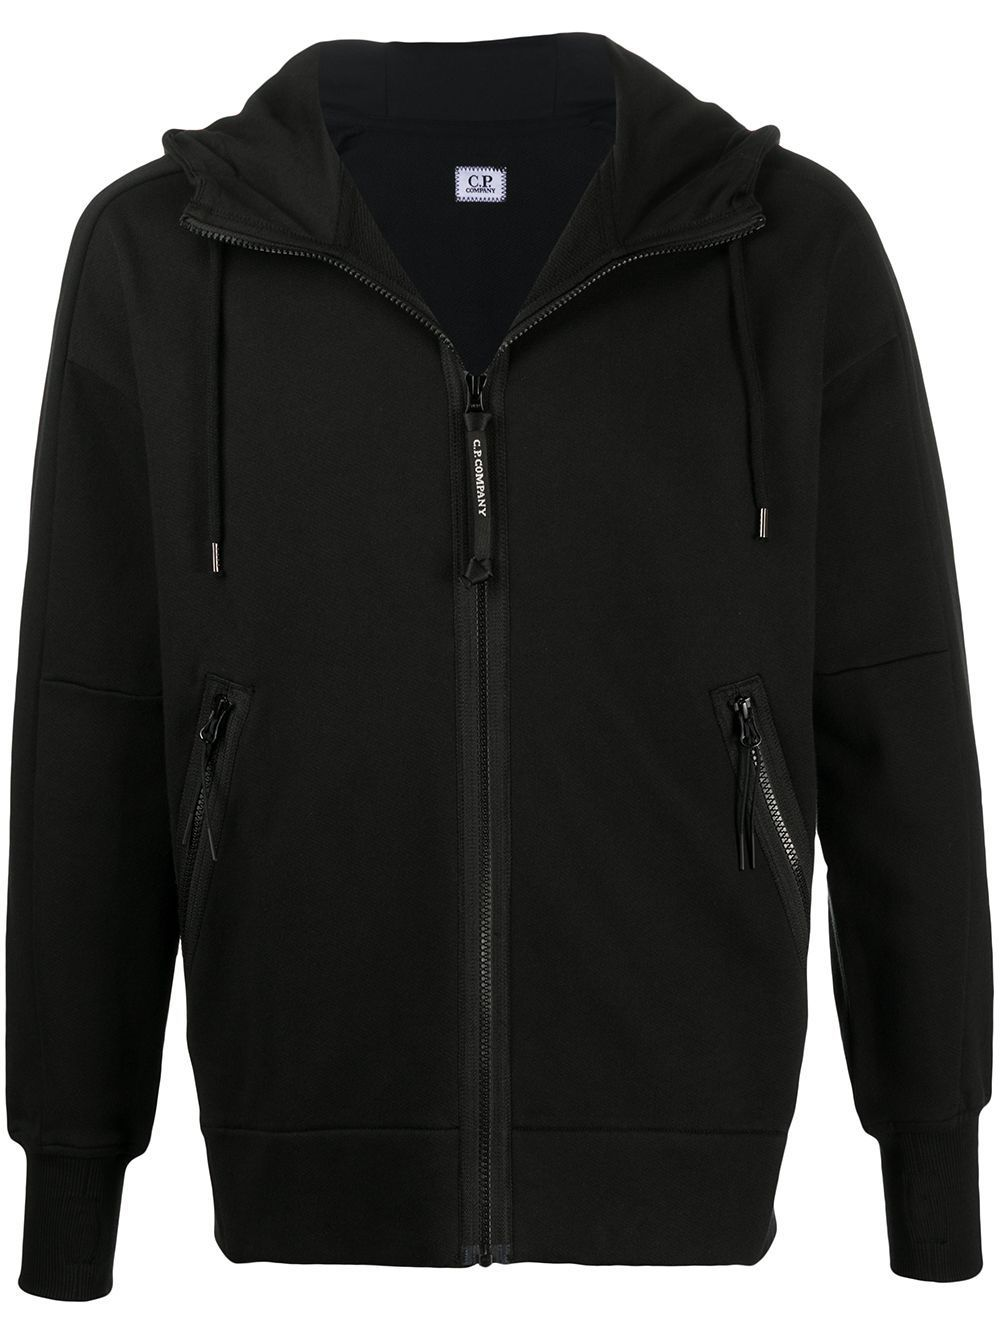 C.P. COMPANY Zipped Goggle Sweatshirt Black